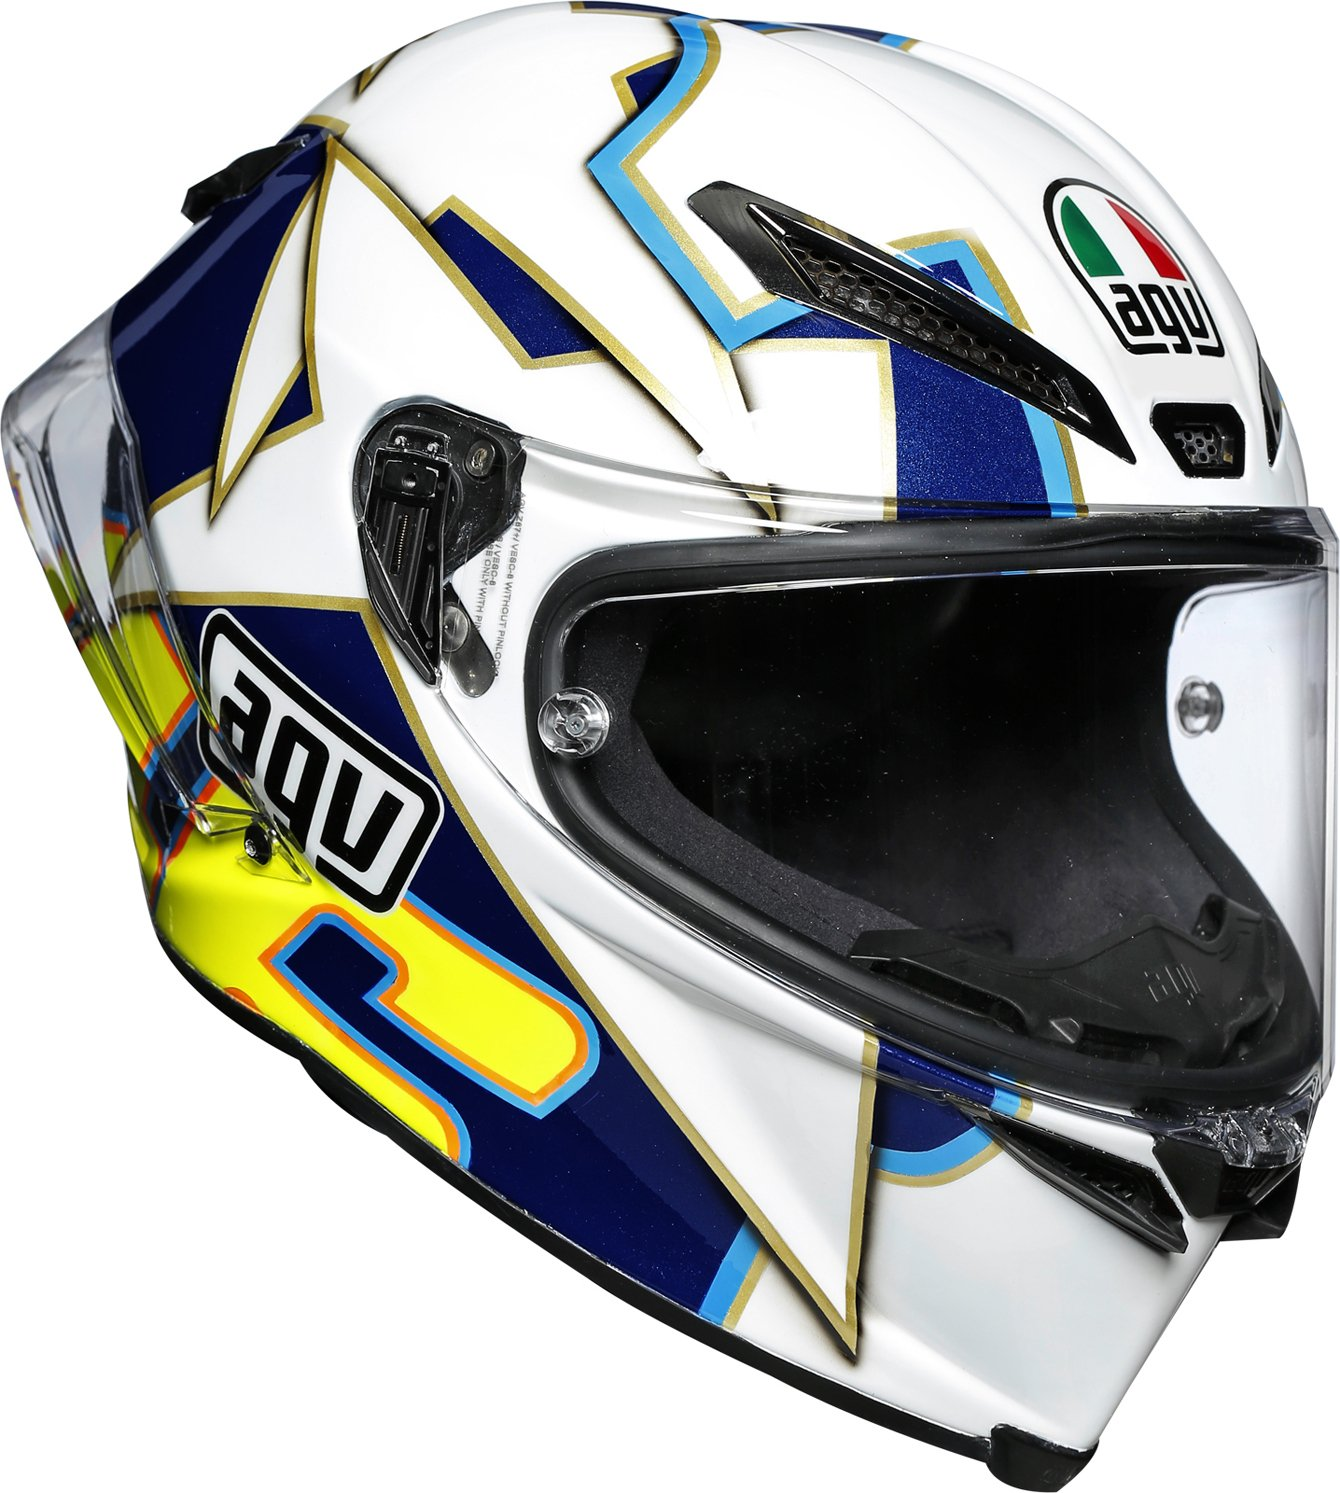 AGV Pista GP RR World Title 2003 Limited Edition 1